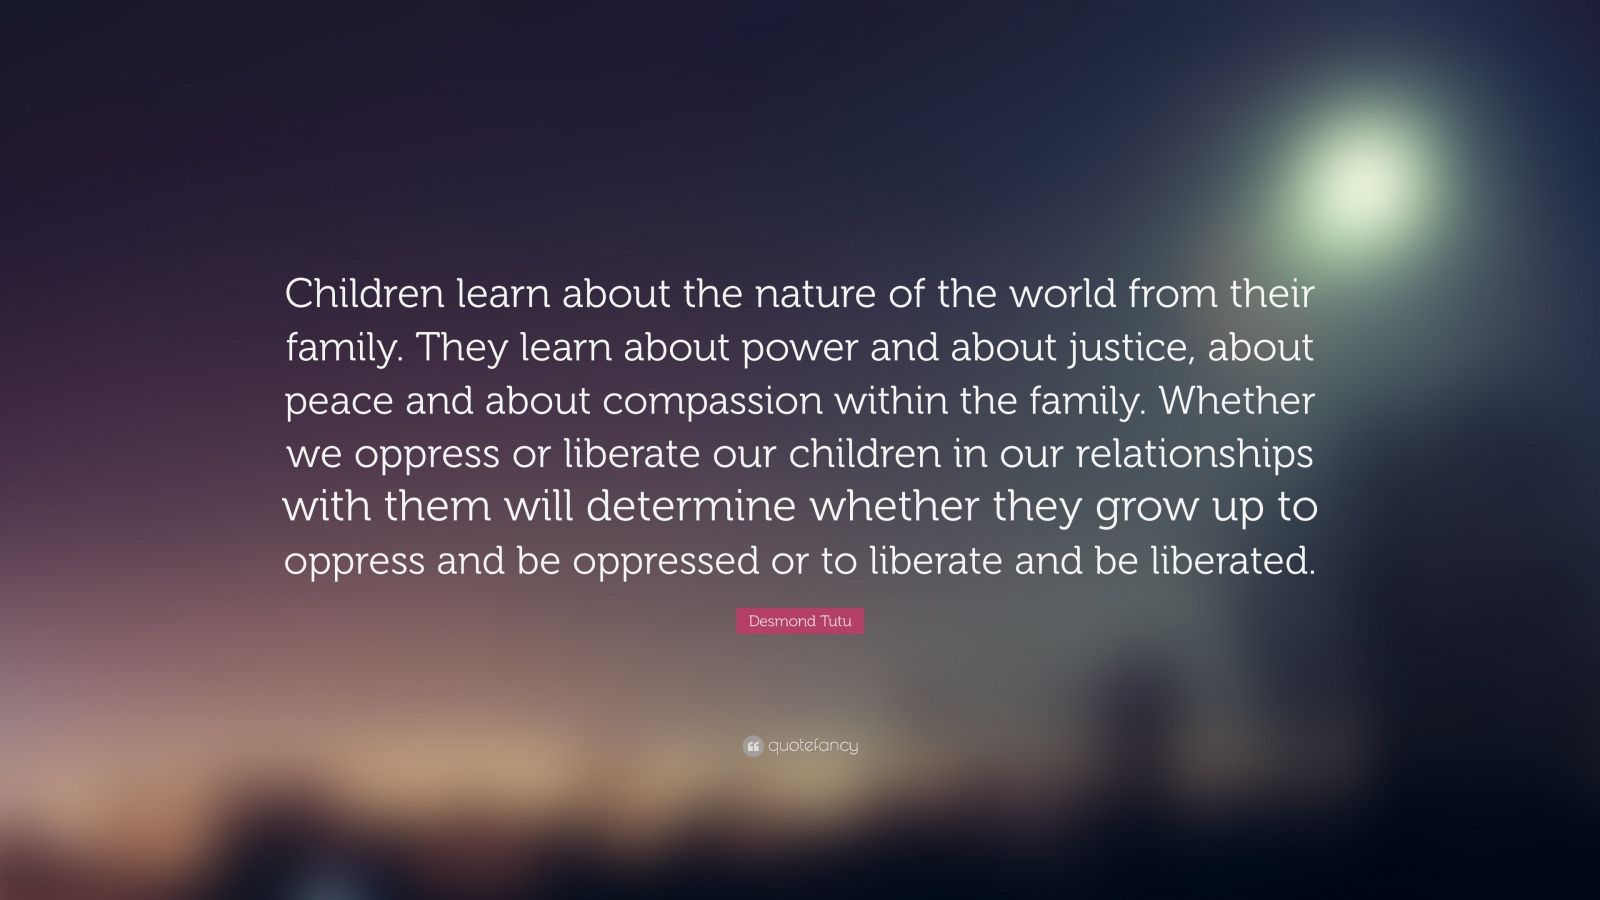 "Desmond Tutu Quote: ""Children learn about the nature of the world from their family. They learn about power and about justice, about peace and about compassion within the family. Whether we oppress or liberate our children in our relationships with them will determine whether they grow up to oppress and be oppressed or to liberate and be liberated."""